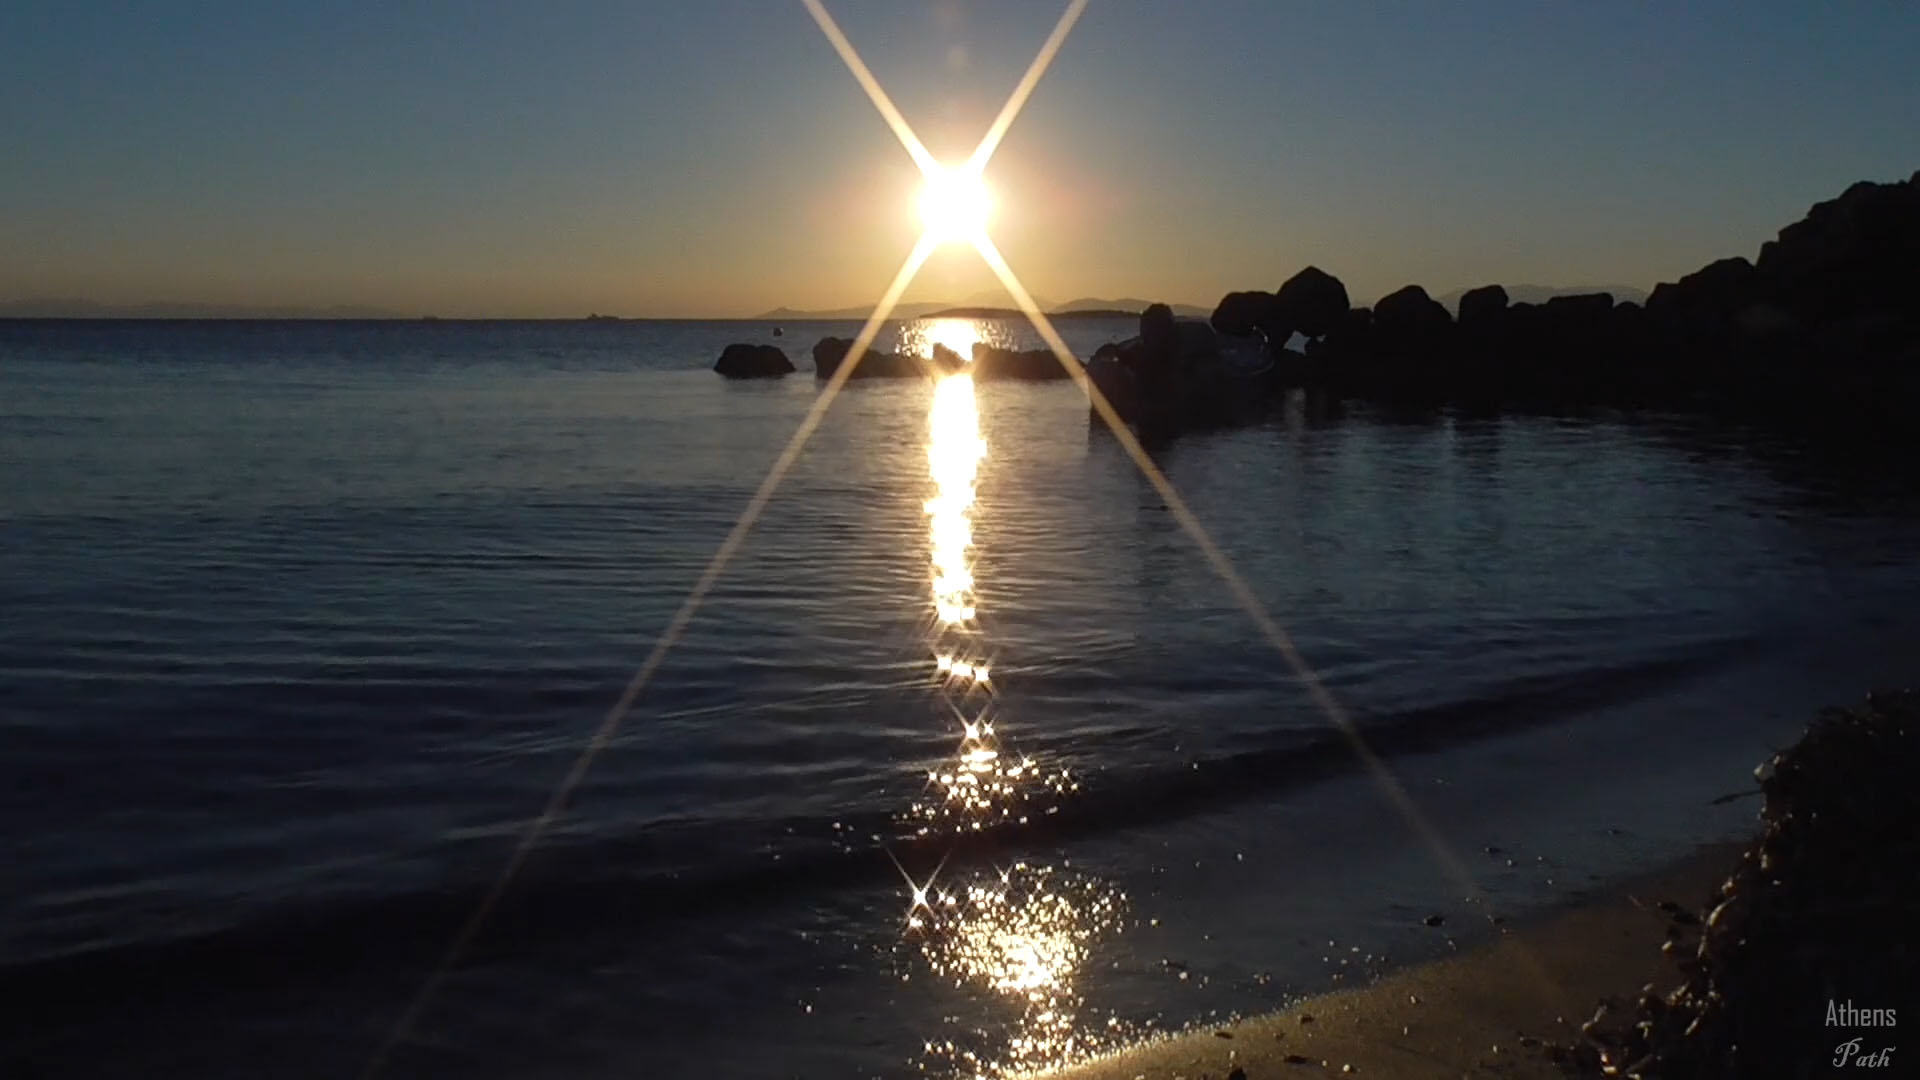 Sunset next to the sea shore